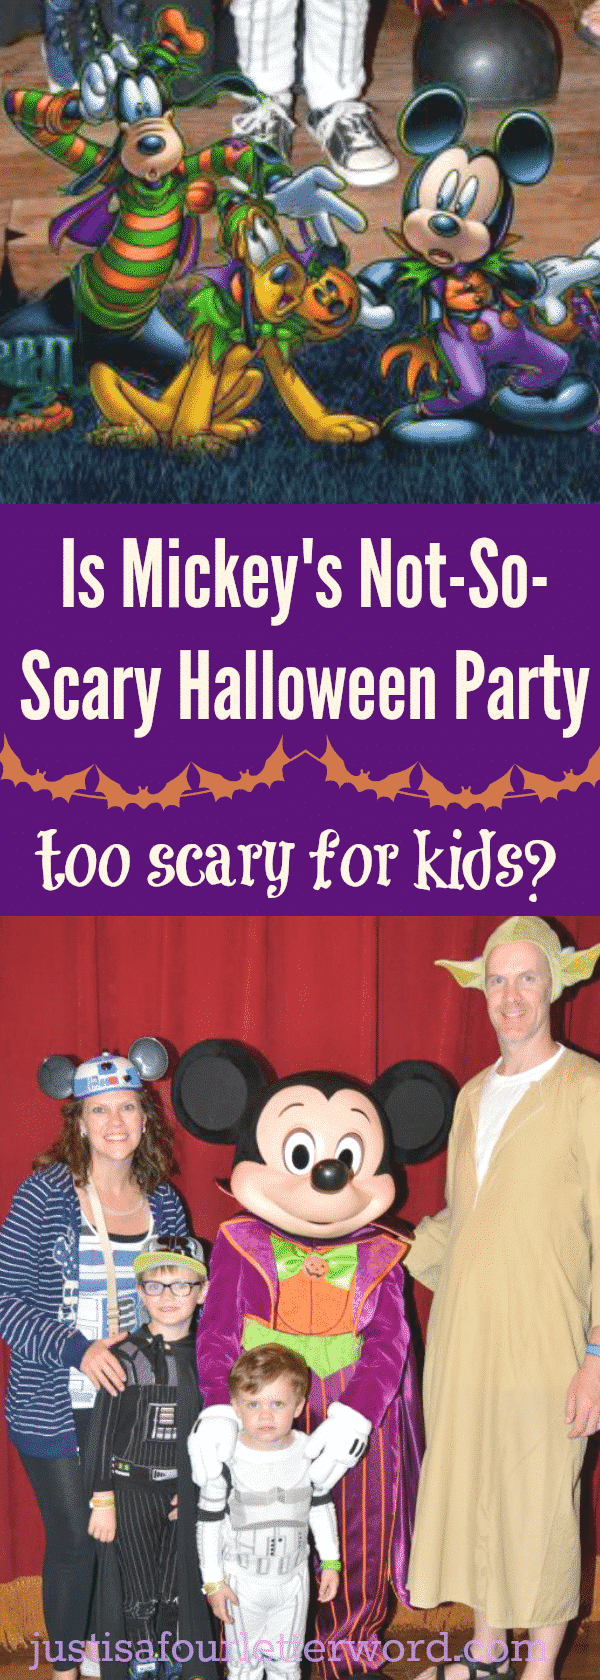 Is Mickey's Not so Scary Halloween Party too scary for kids? We don't think so. But check out these tips to be sure you and your kiddos are ready!